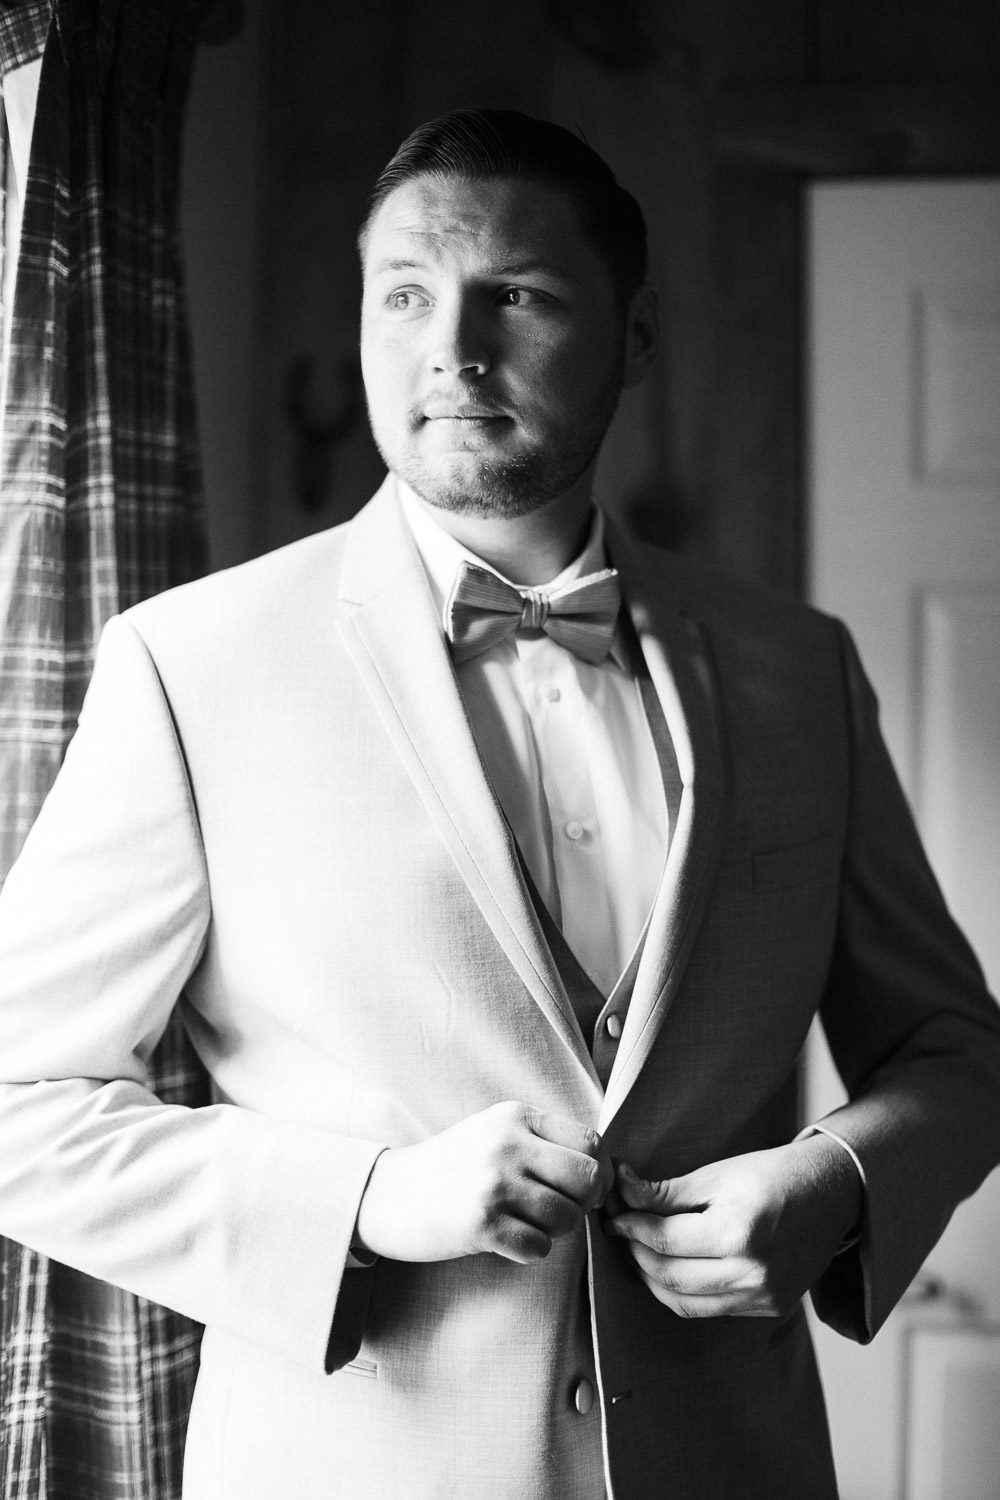 groom buttons jacket and looks out window